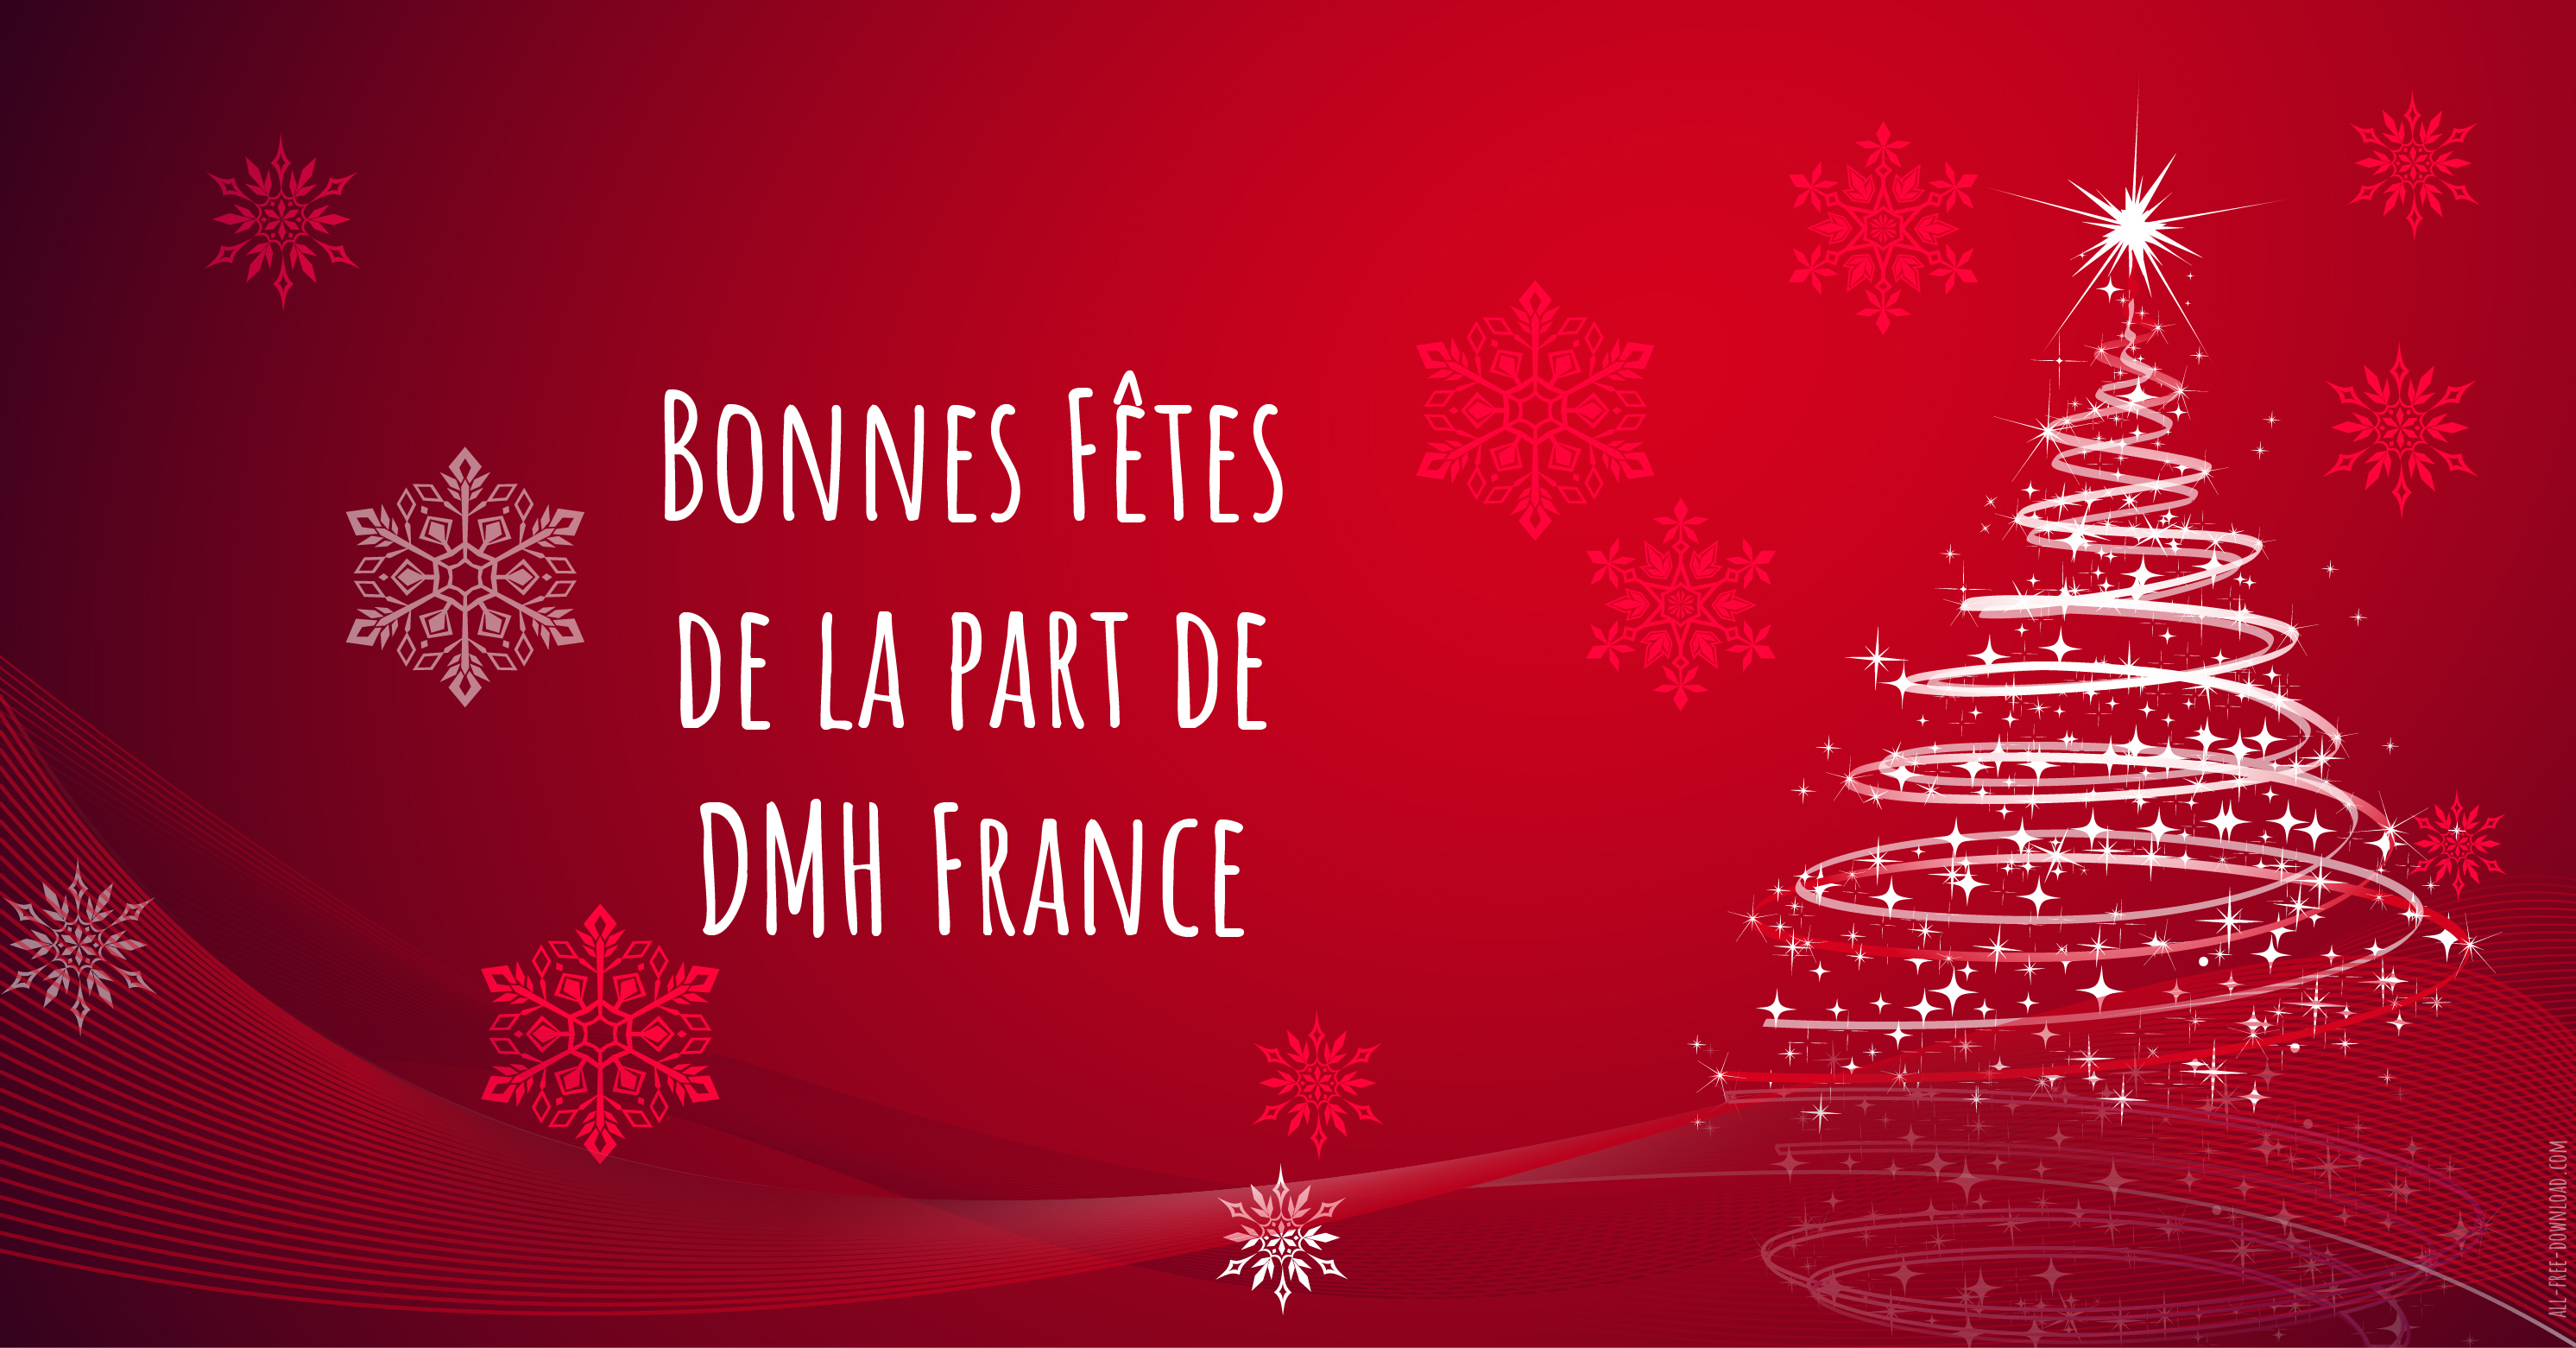 Season's Greetings from DMH France